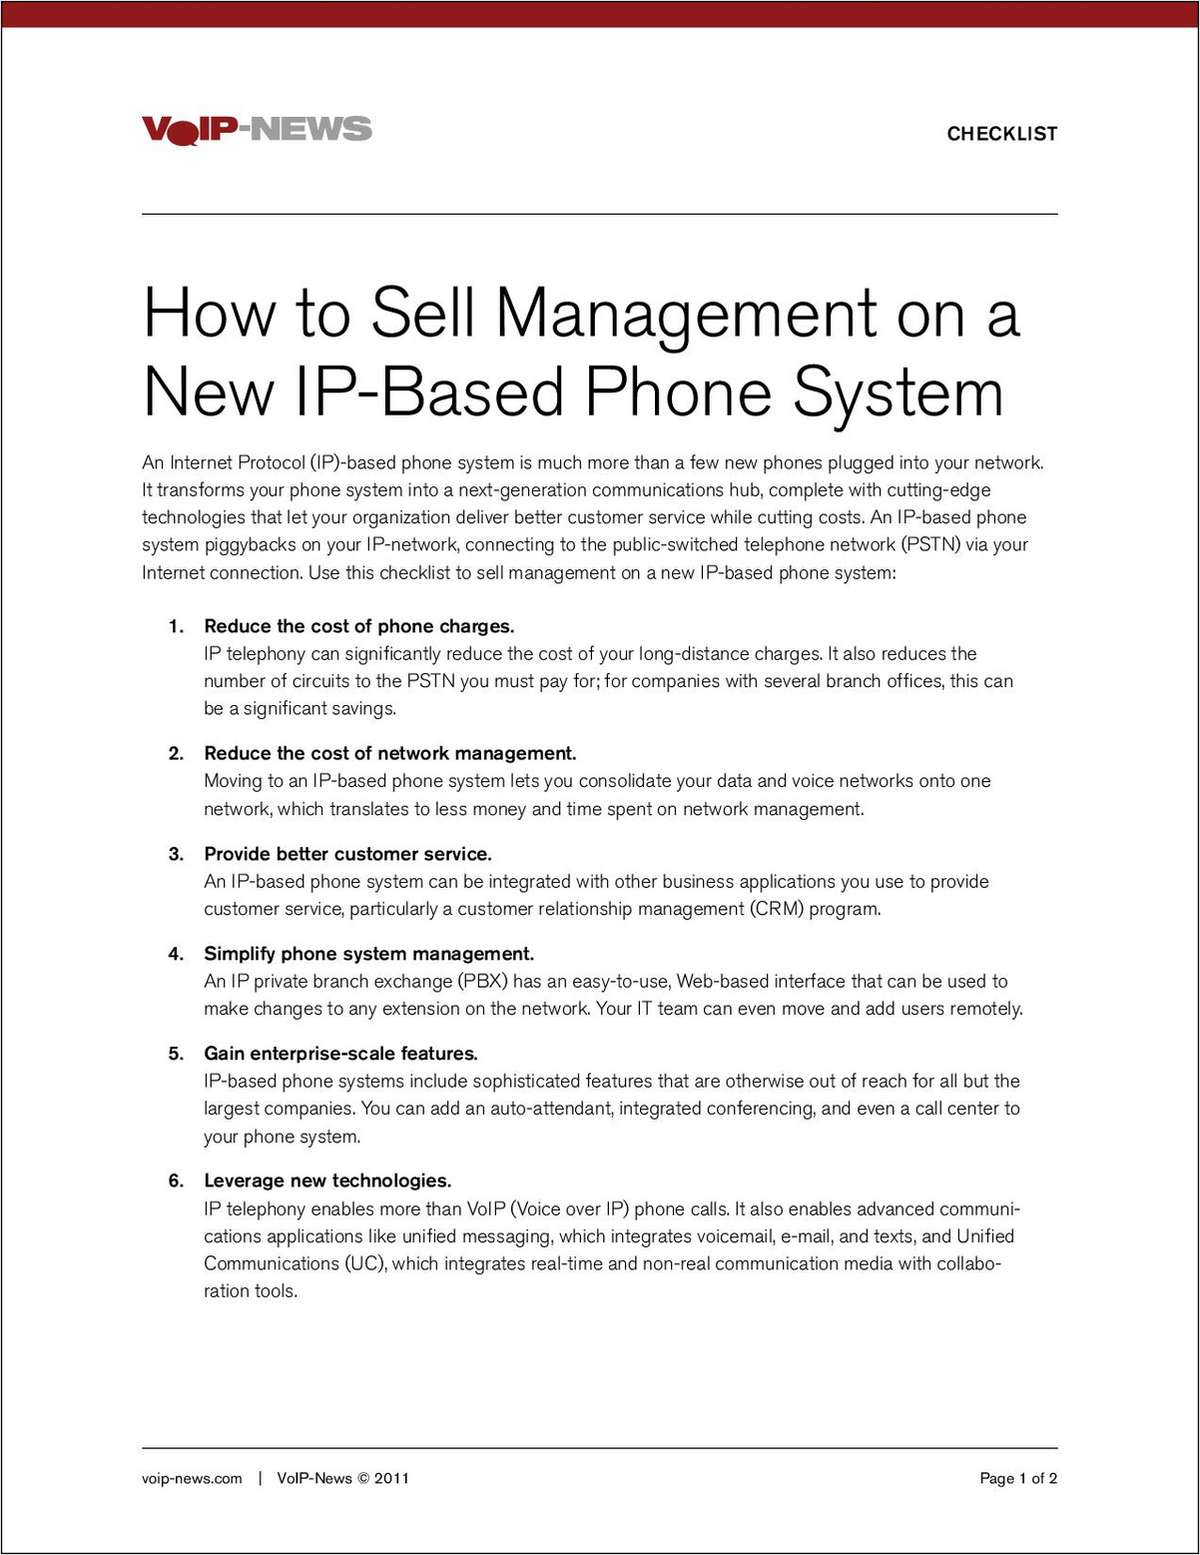 VoIP-News: Sell Management on a New IP-Based Phone System